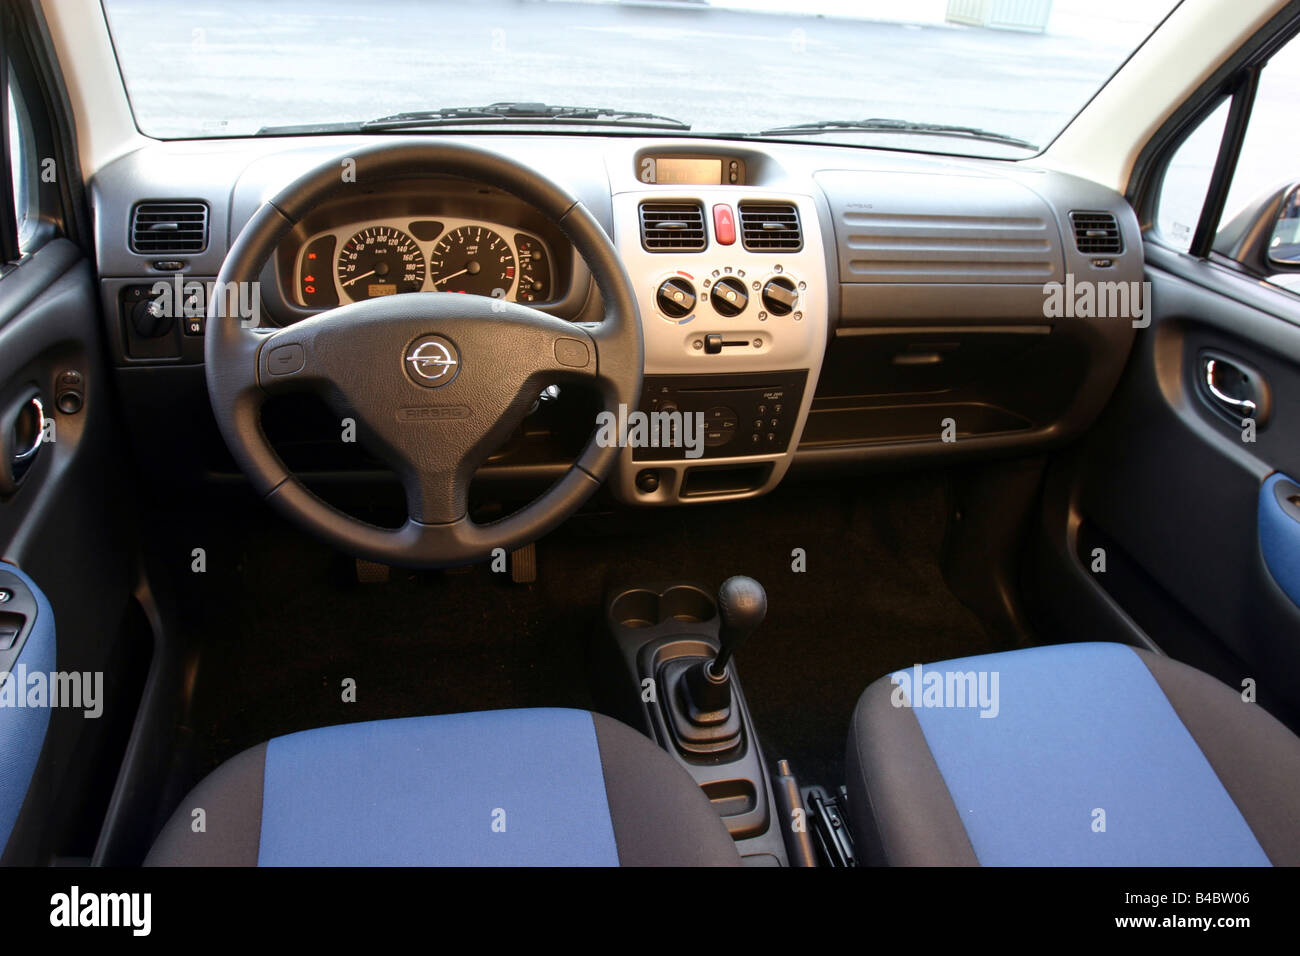 Incredible Interieur Opel Agila Photo Online Wiring Diagram Wiring Cloud Hisonuggs Outletorg